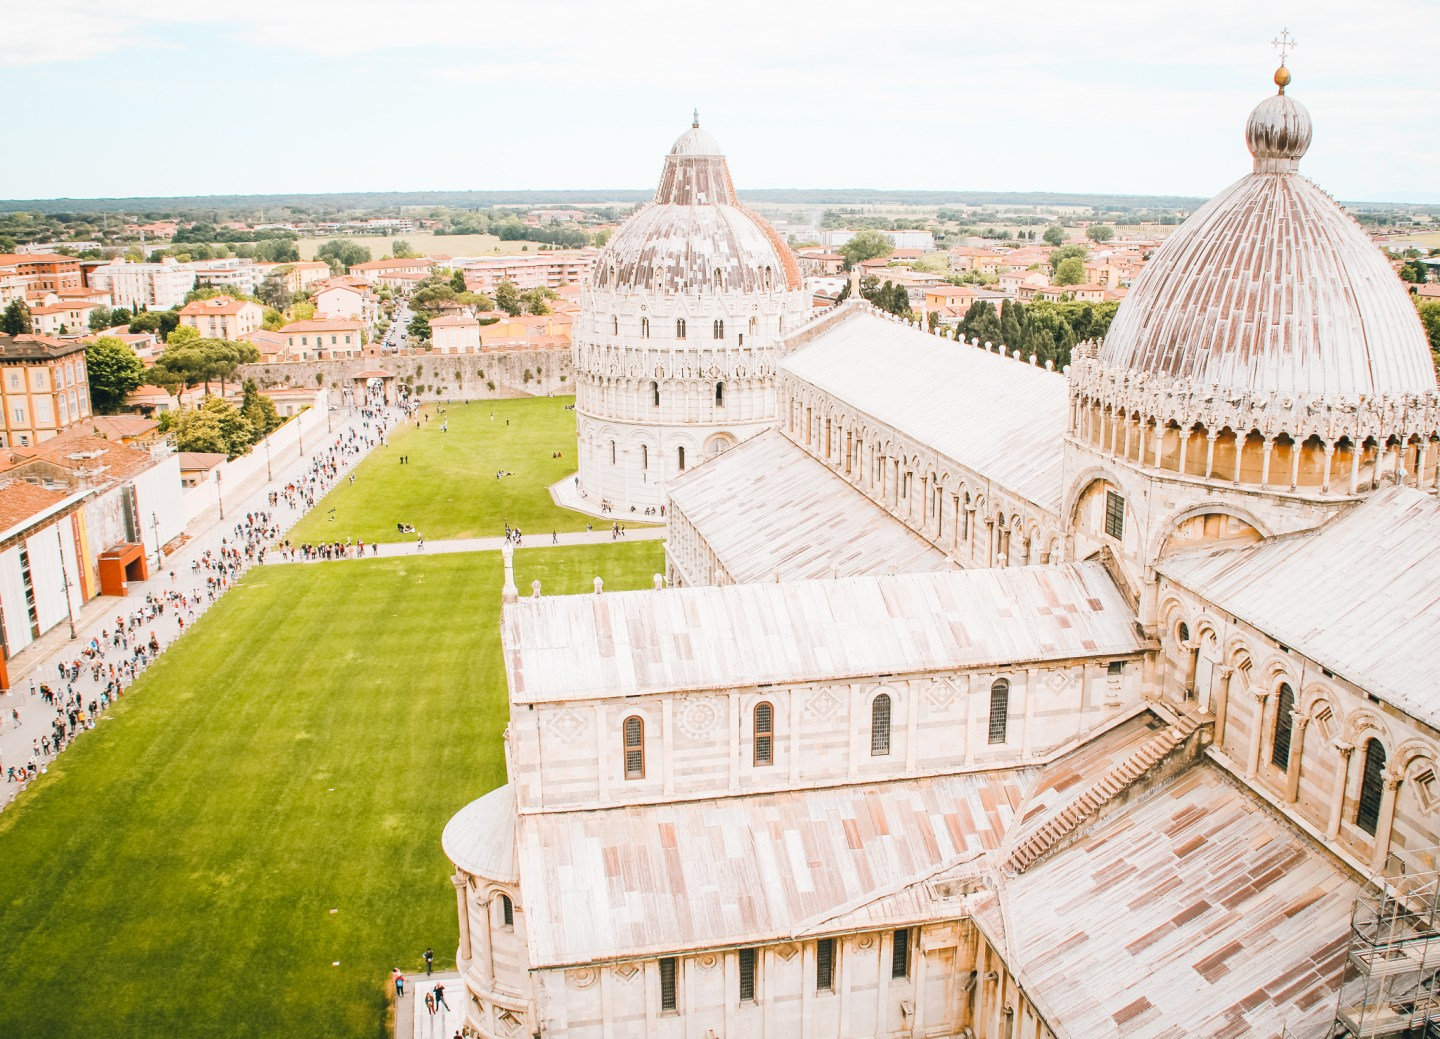 things to do in pisa: climb the leaning tower for the best view